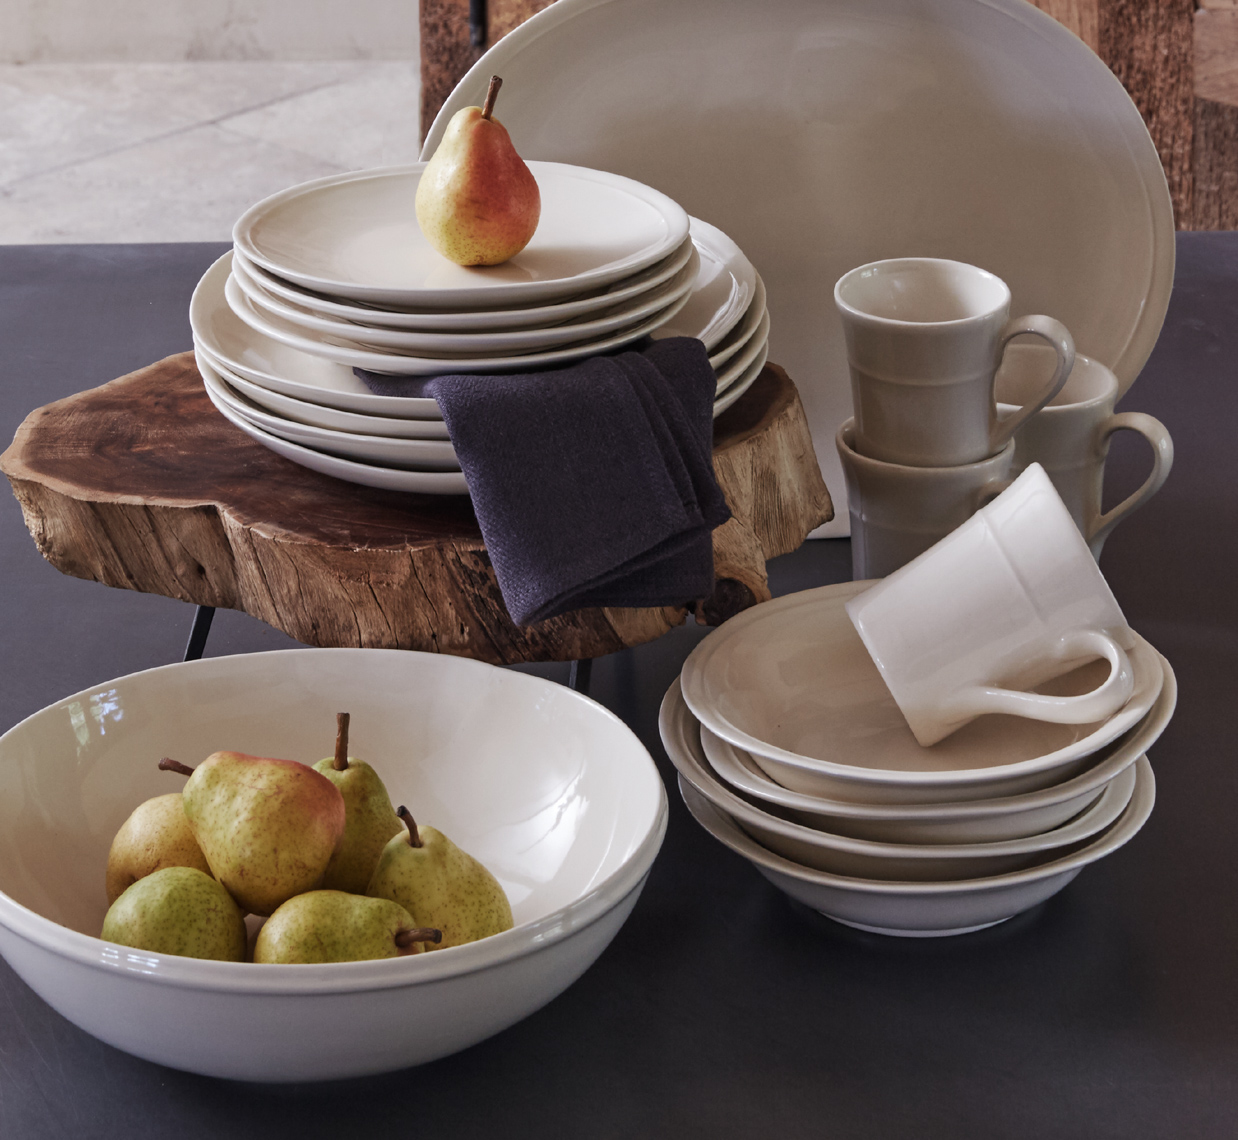 white ceramic bowl with pears and a stack of plates with a pear on top San Francisco interior photographer